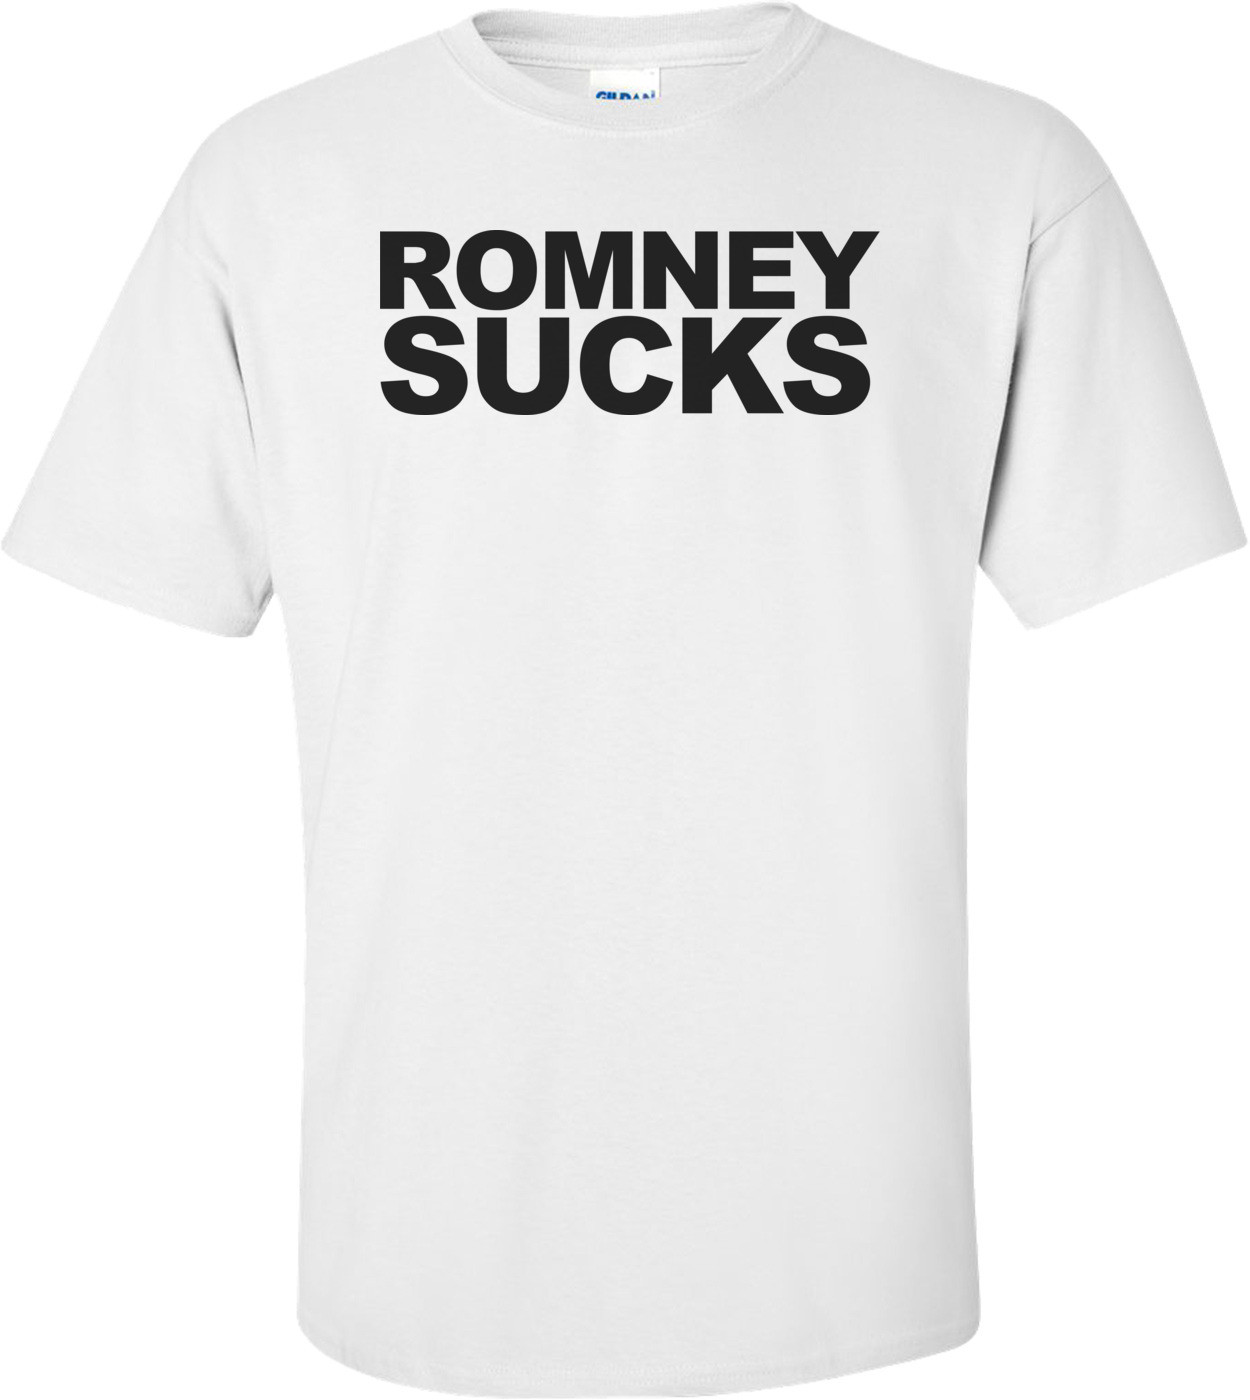 Romney Sucks - Anti Mitt Romney Shirt